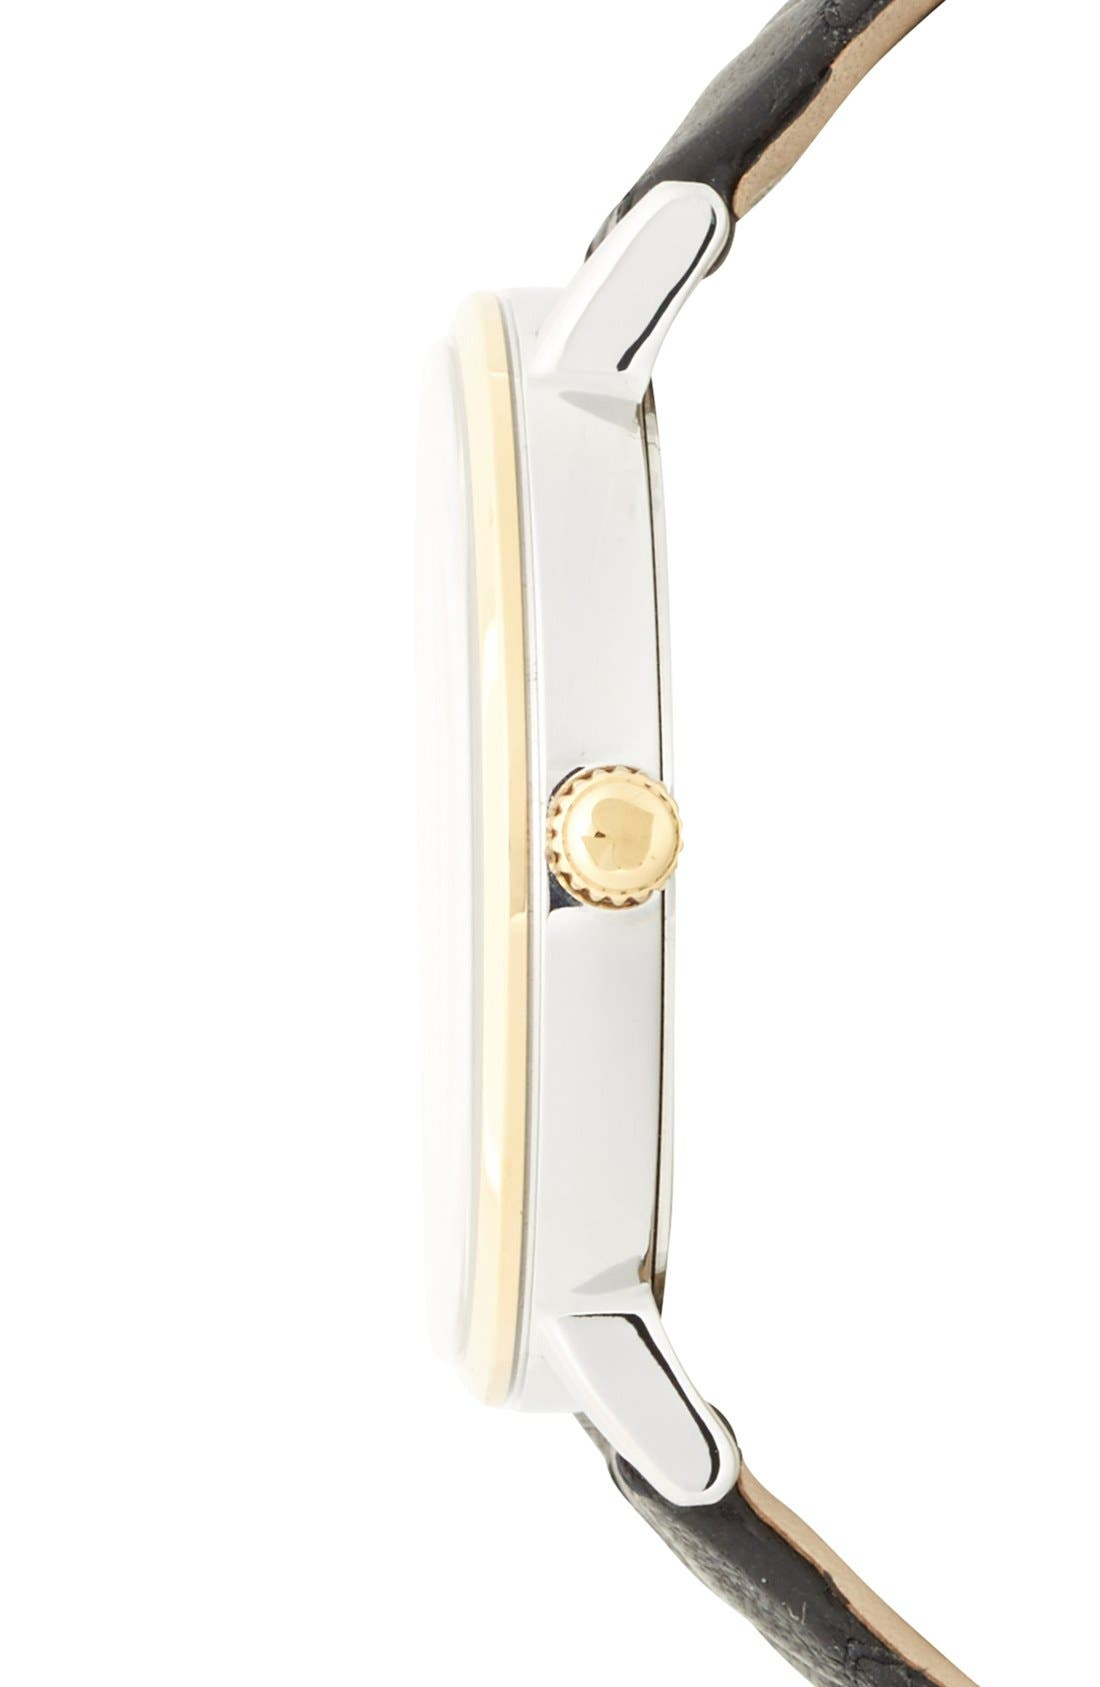 KATE SPADE NEW YORK, 'metro grand' quilted strap watch, 38mm, Alternate thumbnail 5, color, 001